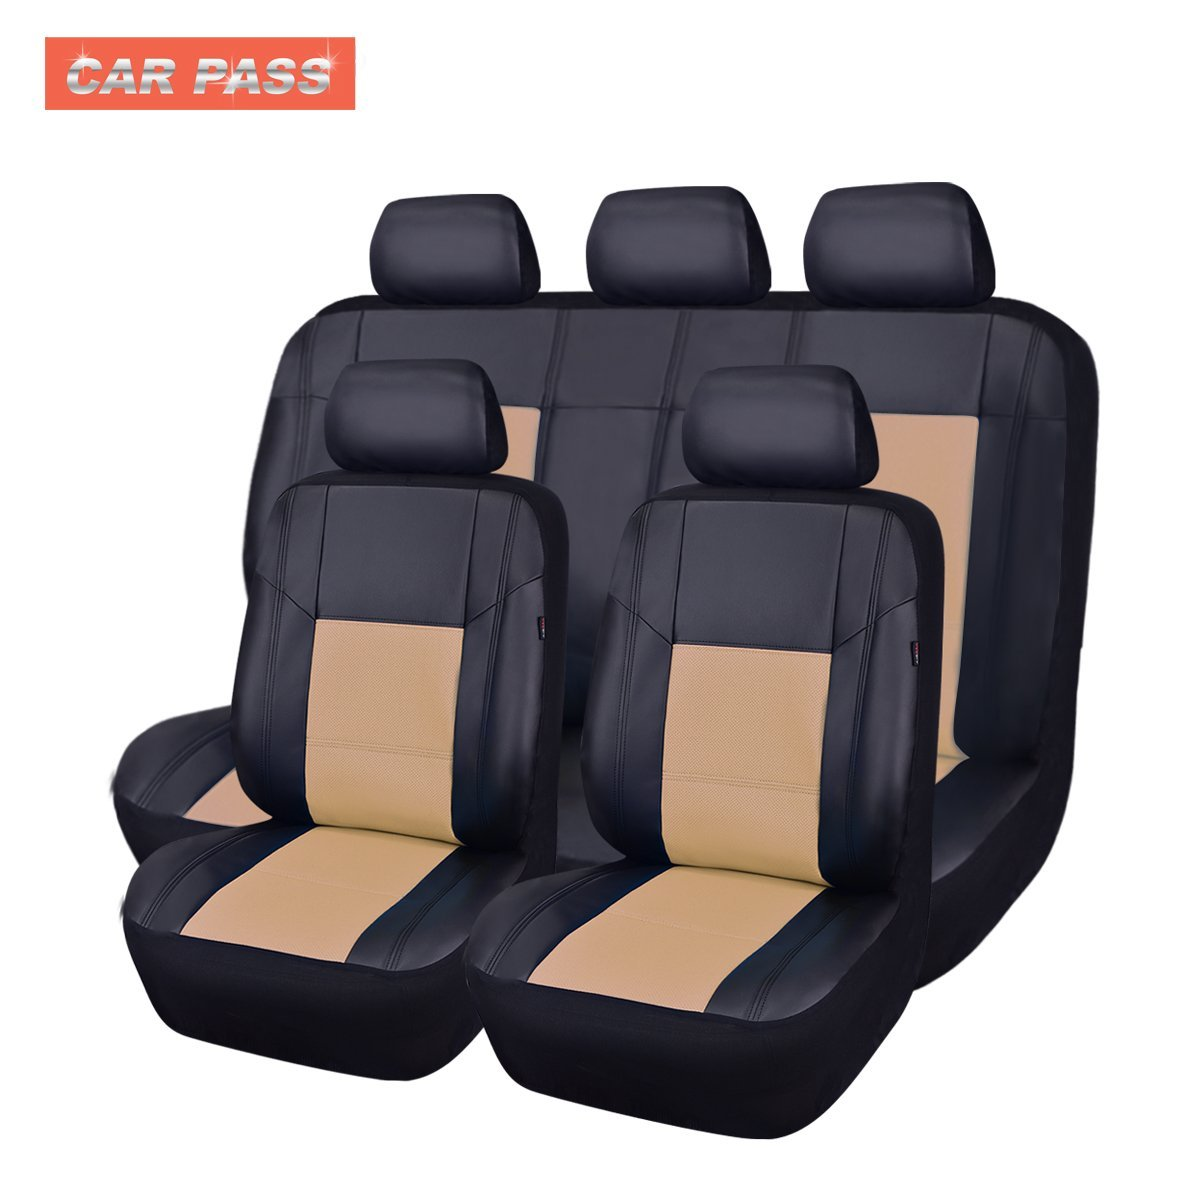 universal black red pu leather car seat covers set fit airbag breathable 40 60 ebay. Black Bedroom Furniture Sets. Home Design Ideas